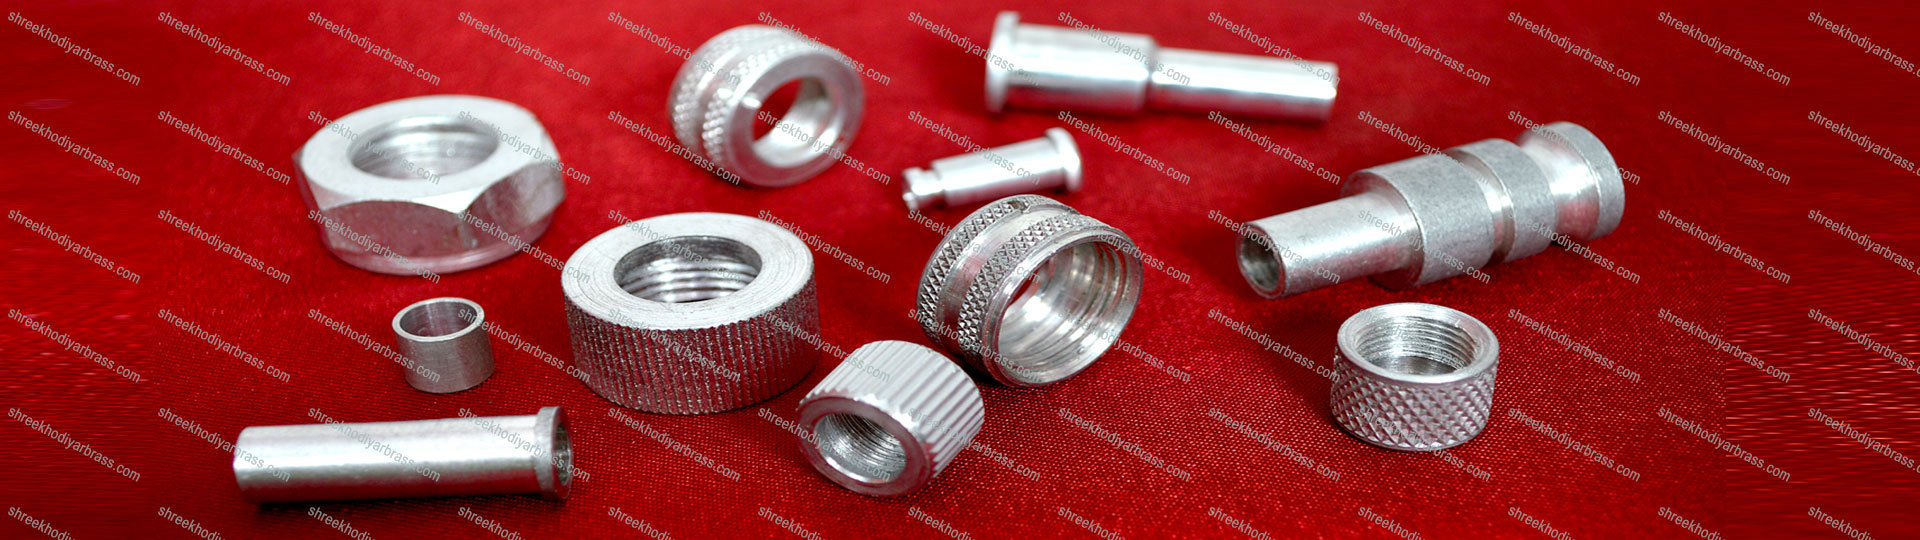 Aluminium auto parts, automotive components